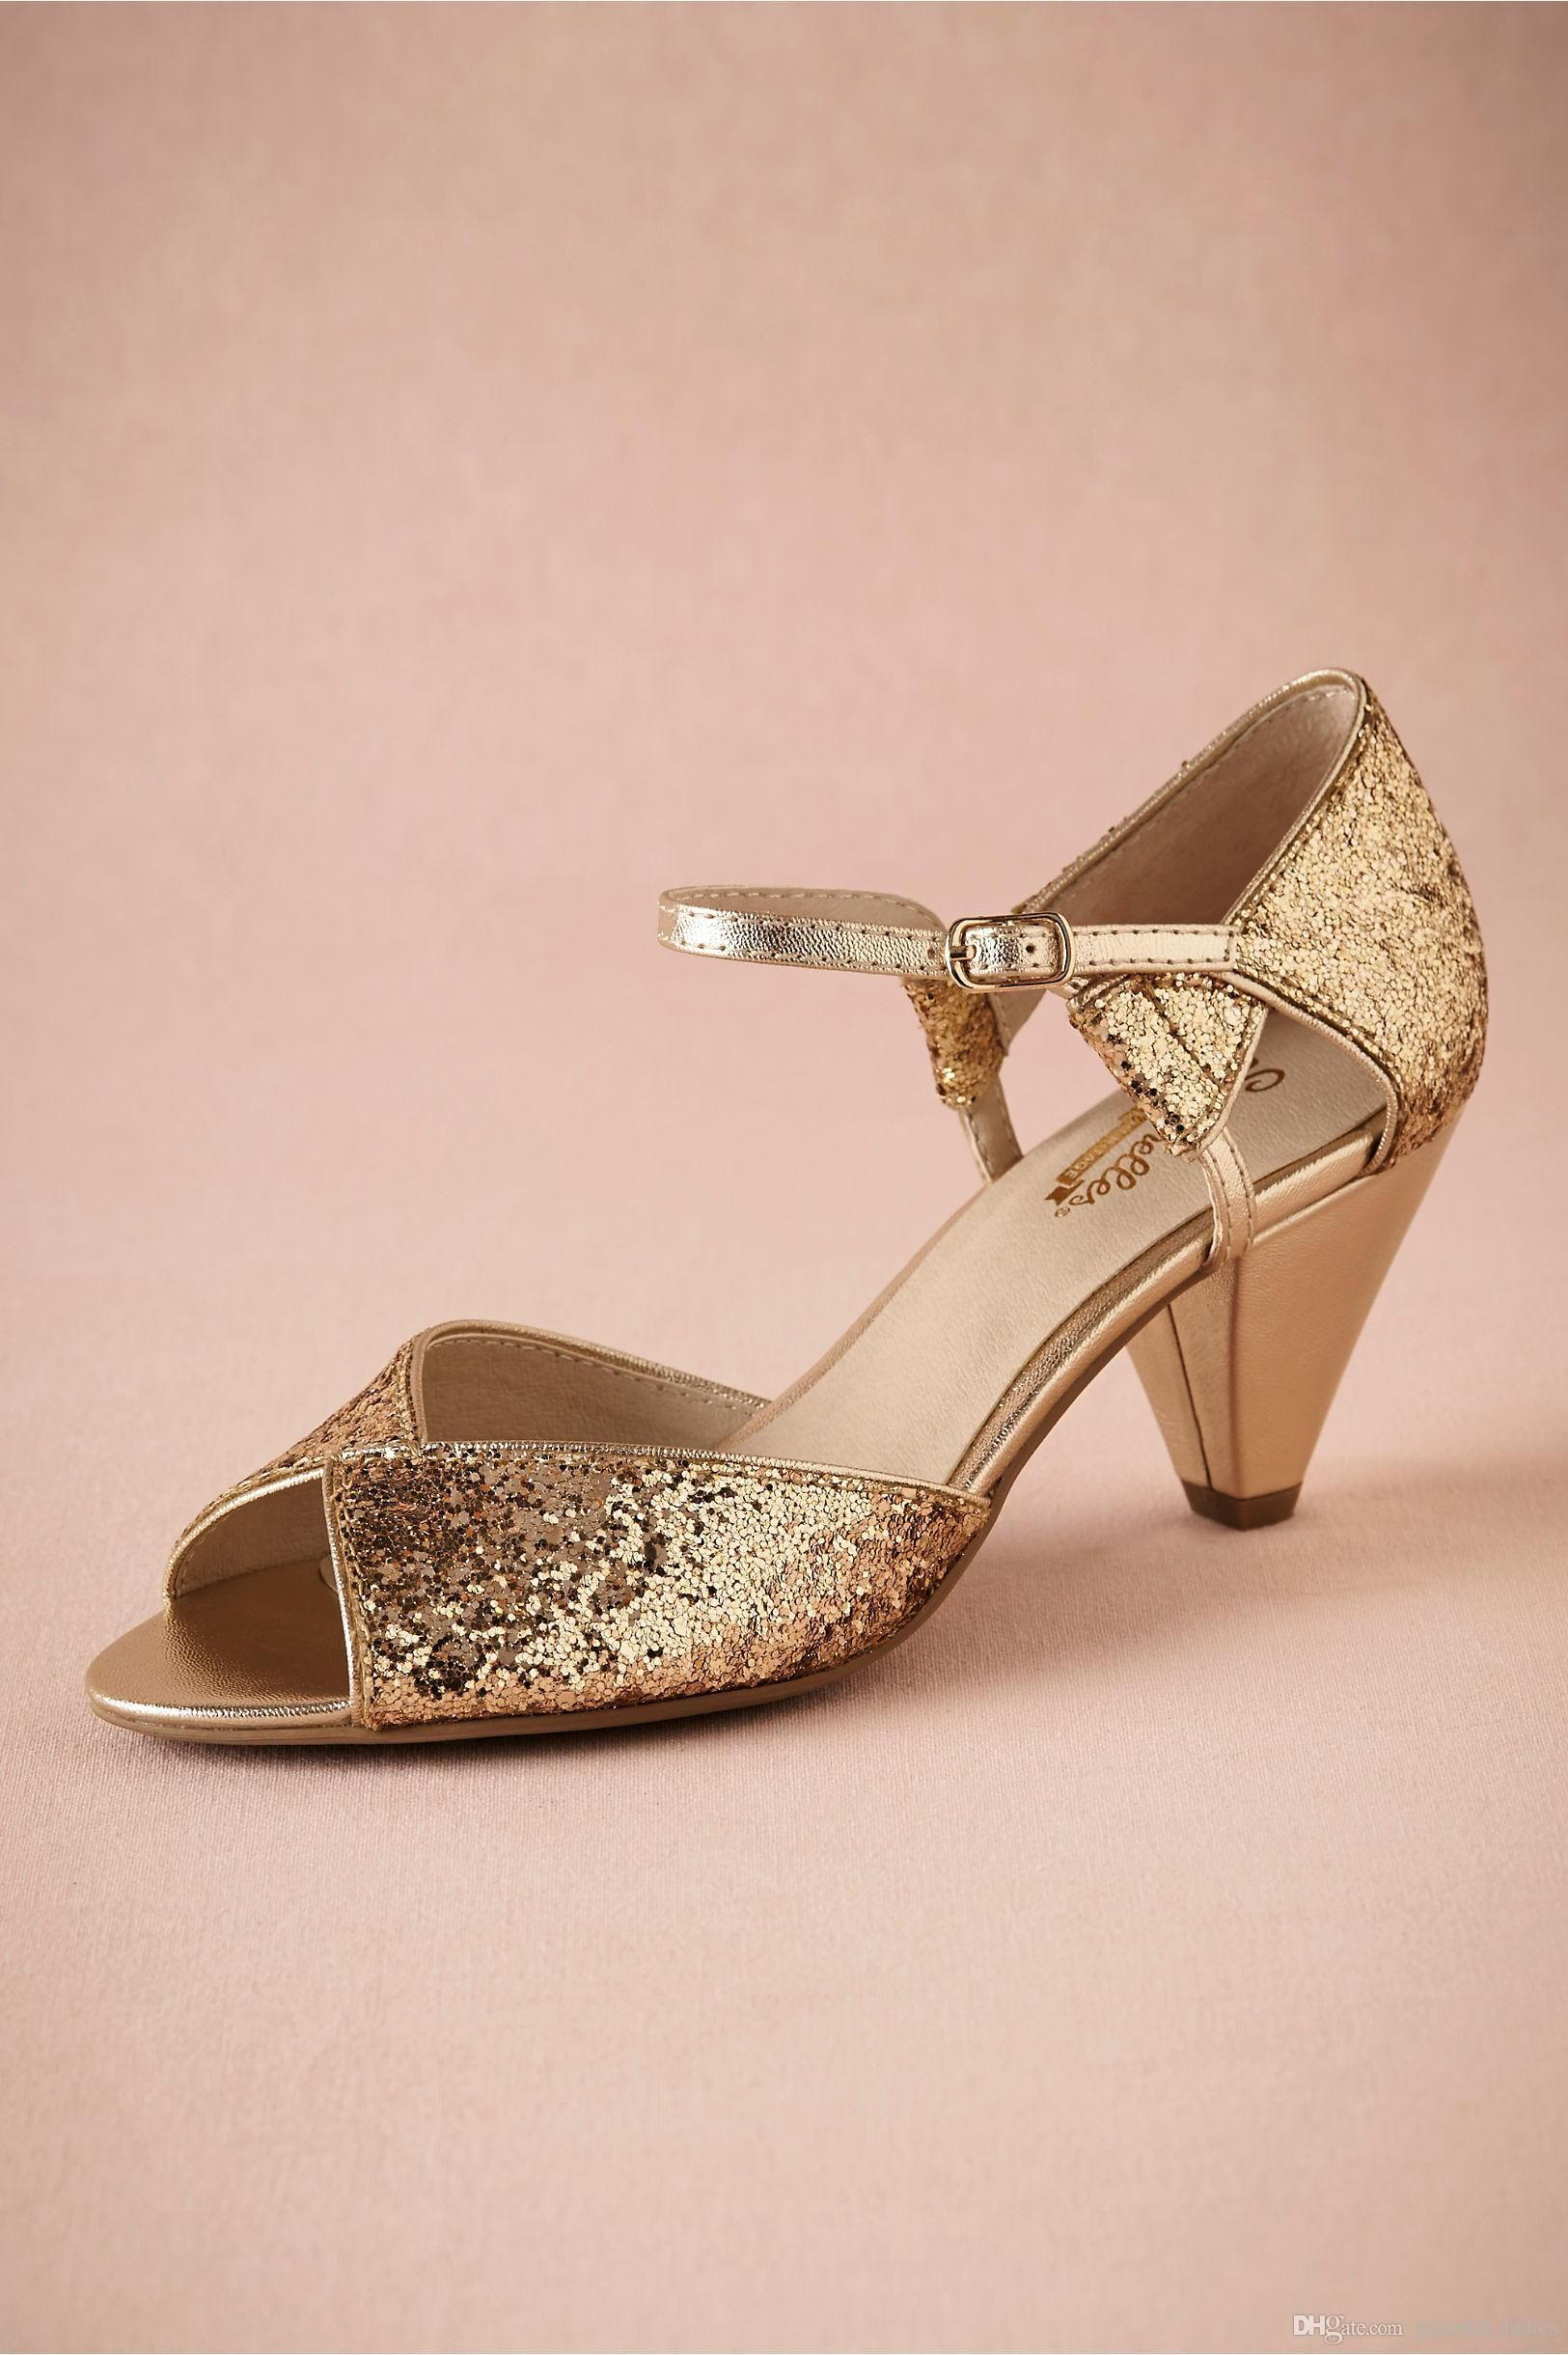 Gold Glitter Spark Wedding Shoe Handmade Pumps Leather Sole Comfortable Pumps Toe 2.5 Leather Wrapped Cone Heels Women Sandals Dance Shoes Wedding Shoes Glittery Maids Wedding Shoes GOLD Bridal Shoes Online with 86.86/Pair on Arrowma's Store | DHgate.com